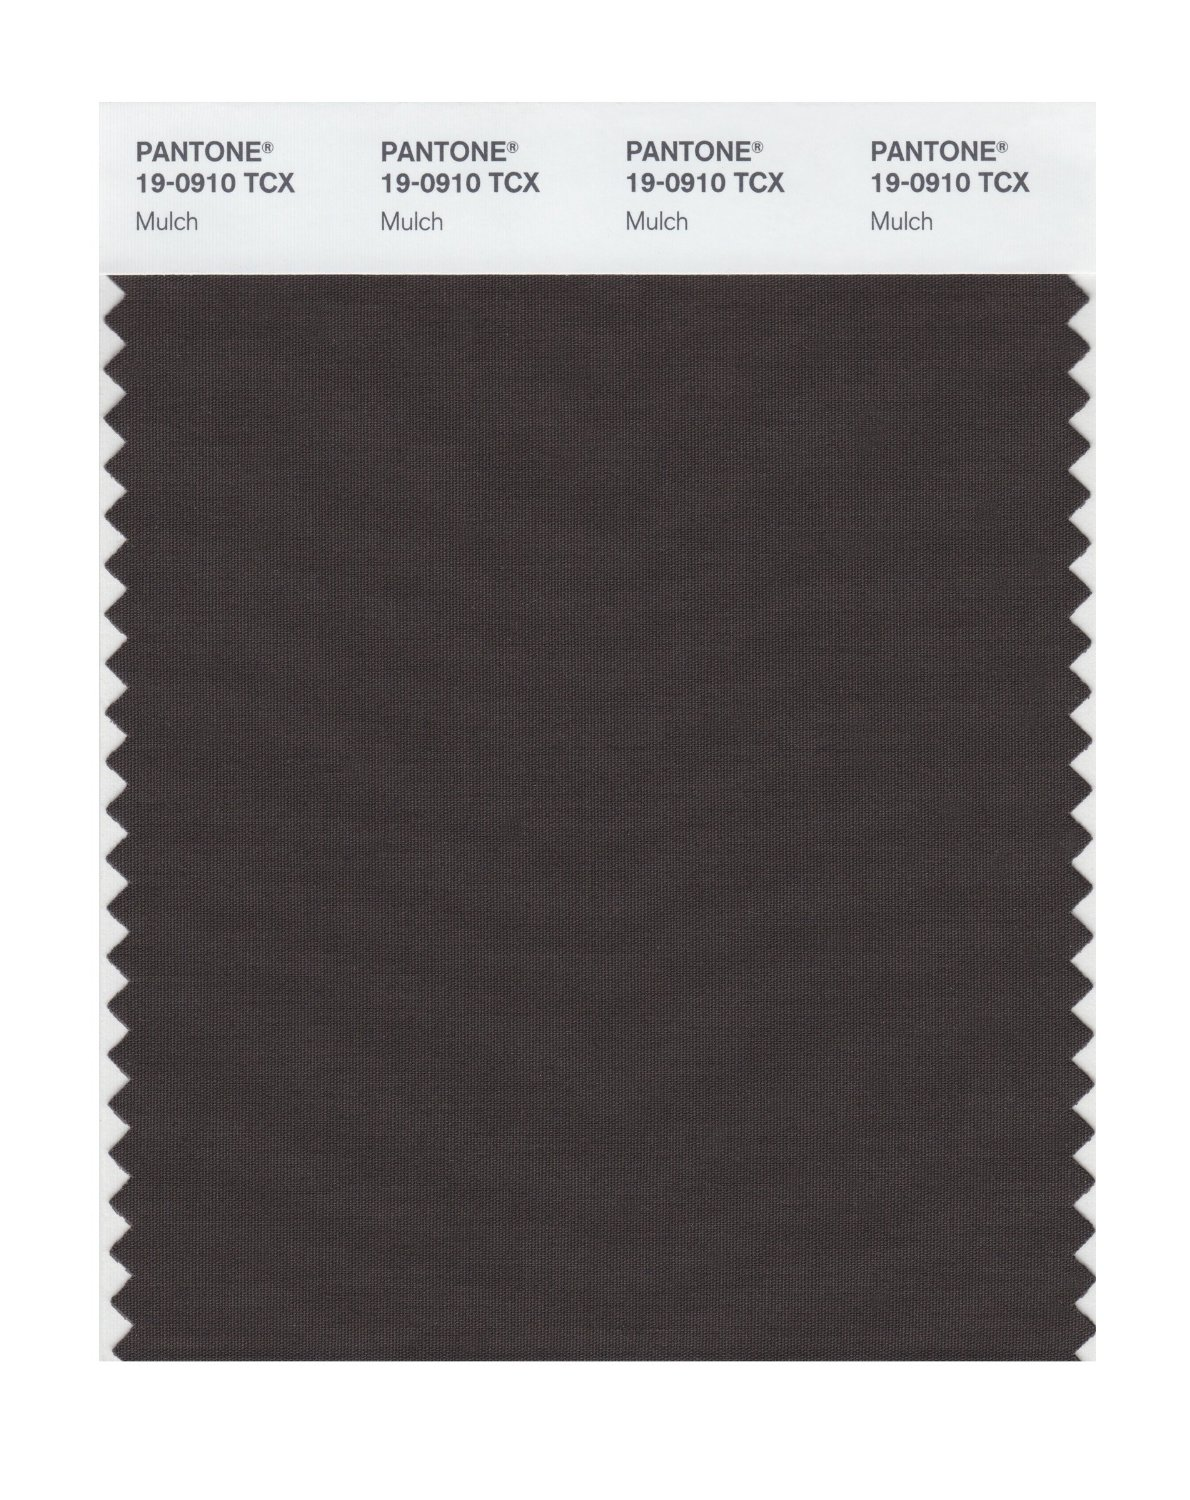 Pantone Smart Swatch 19-0910 Mulch